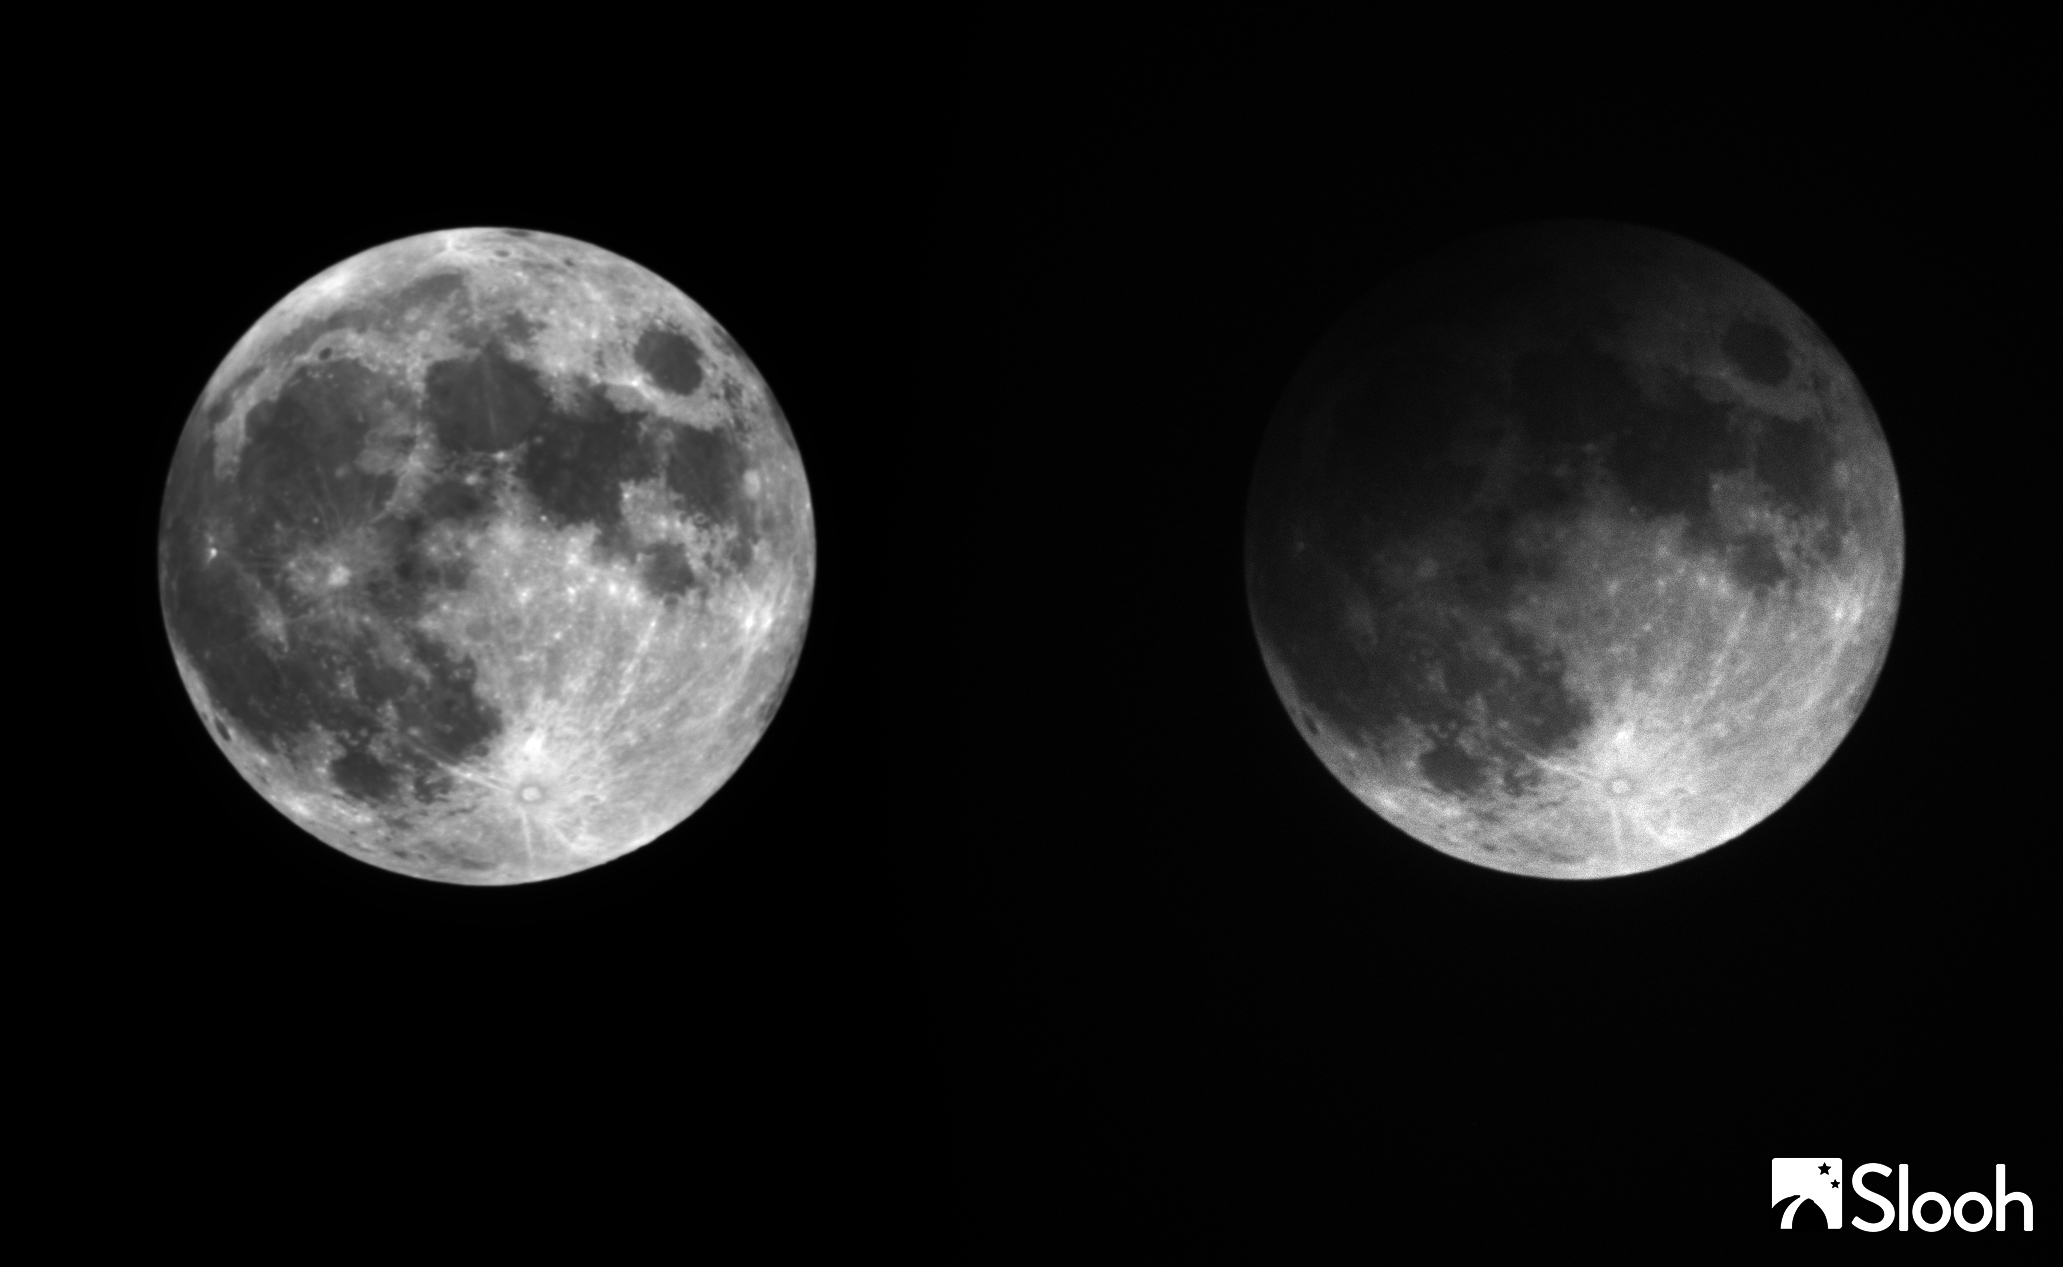 In Photos: The Snow Moon Lunar Eclipse & Comet 45P Close Encounter